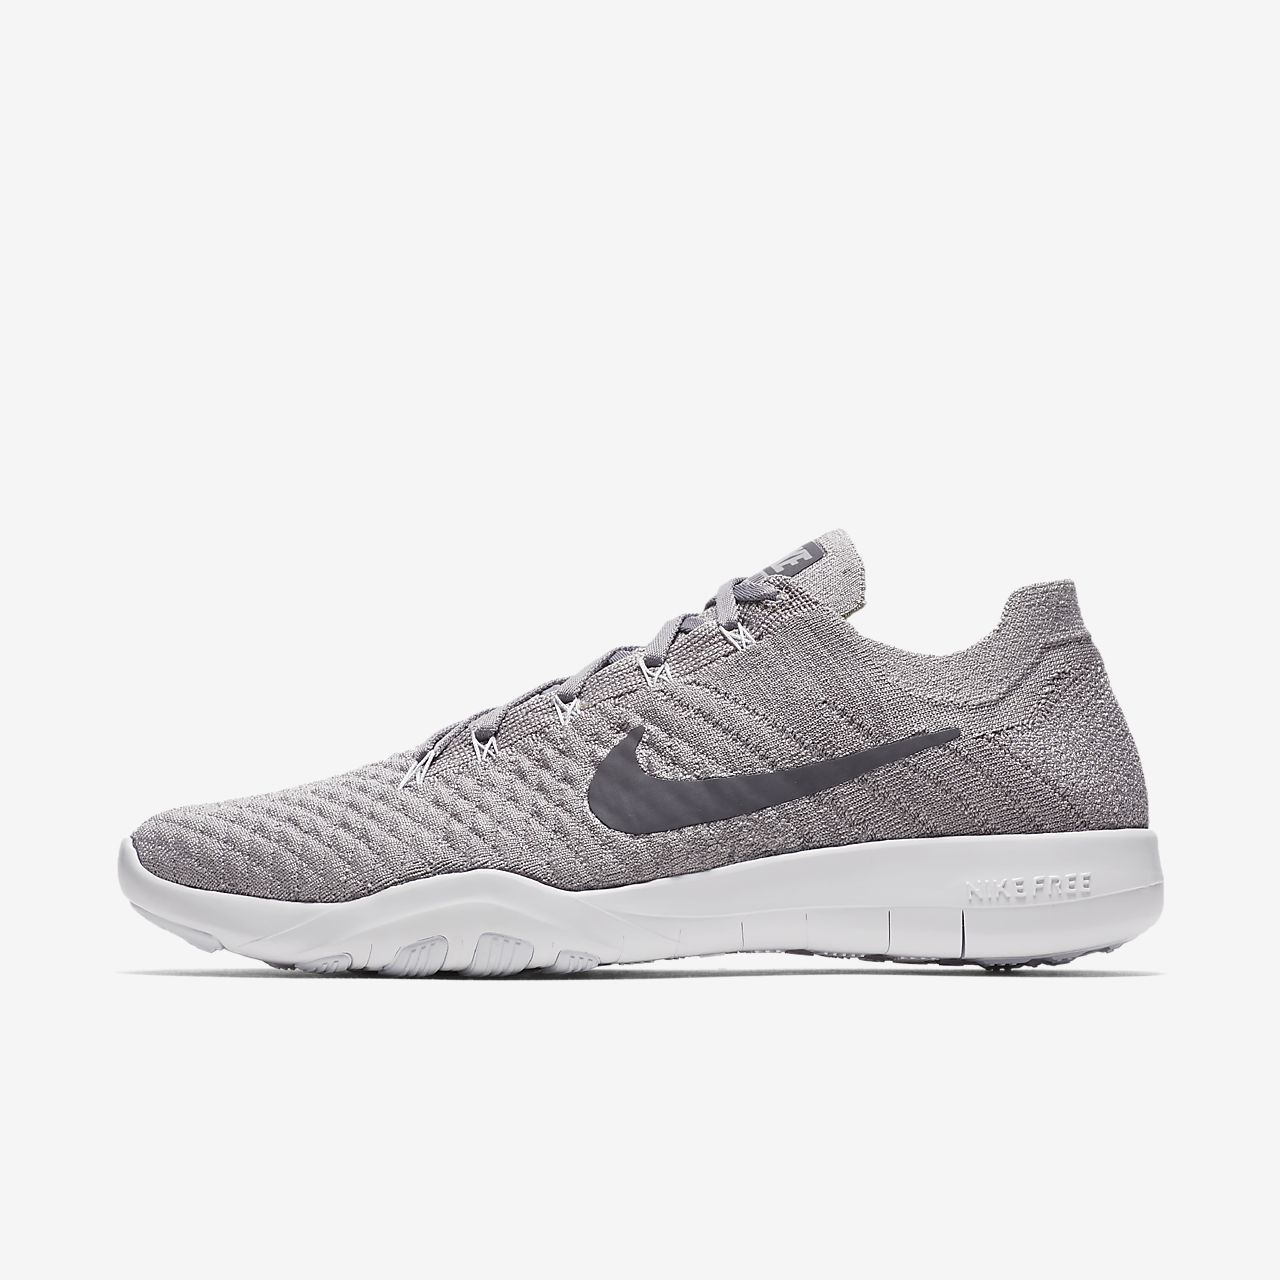 nike free tr flyknit 2, ... Nike Free TR Flyknit 2 Women's Bodyweight Training, Workout Shoe